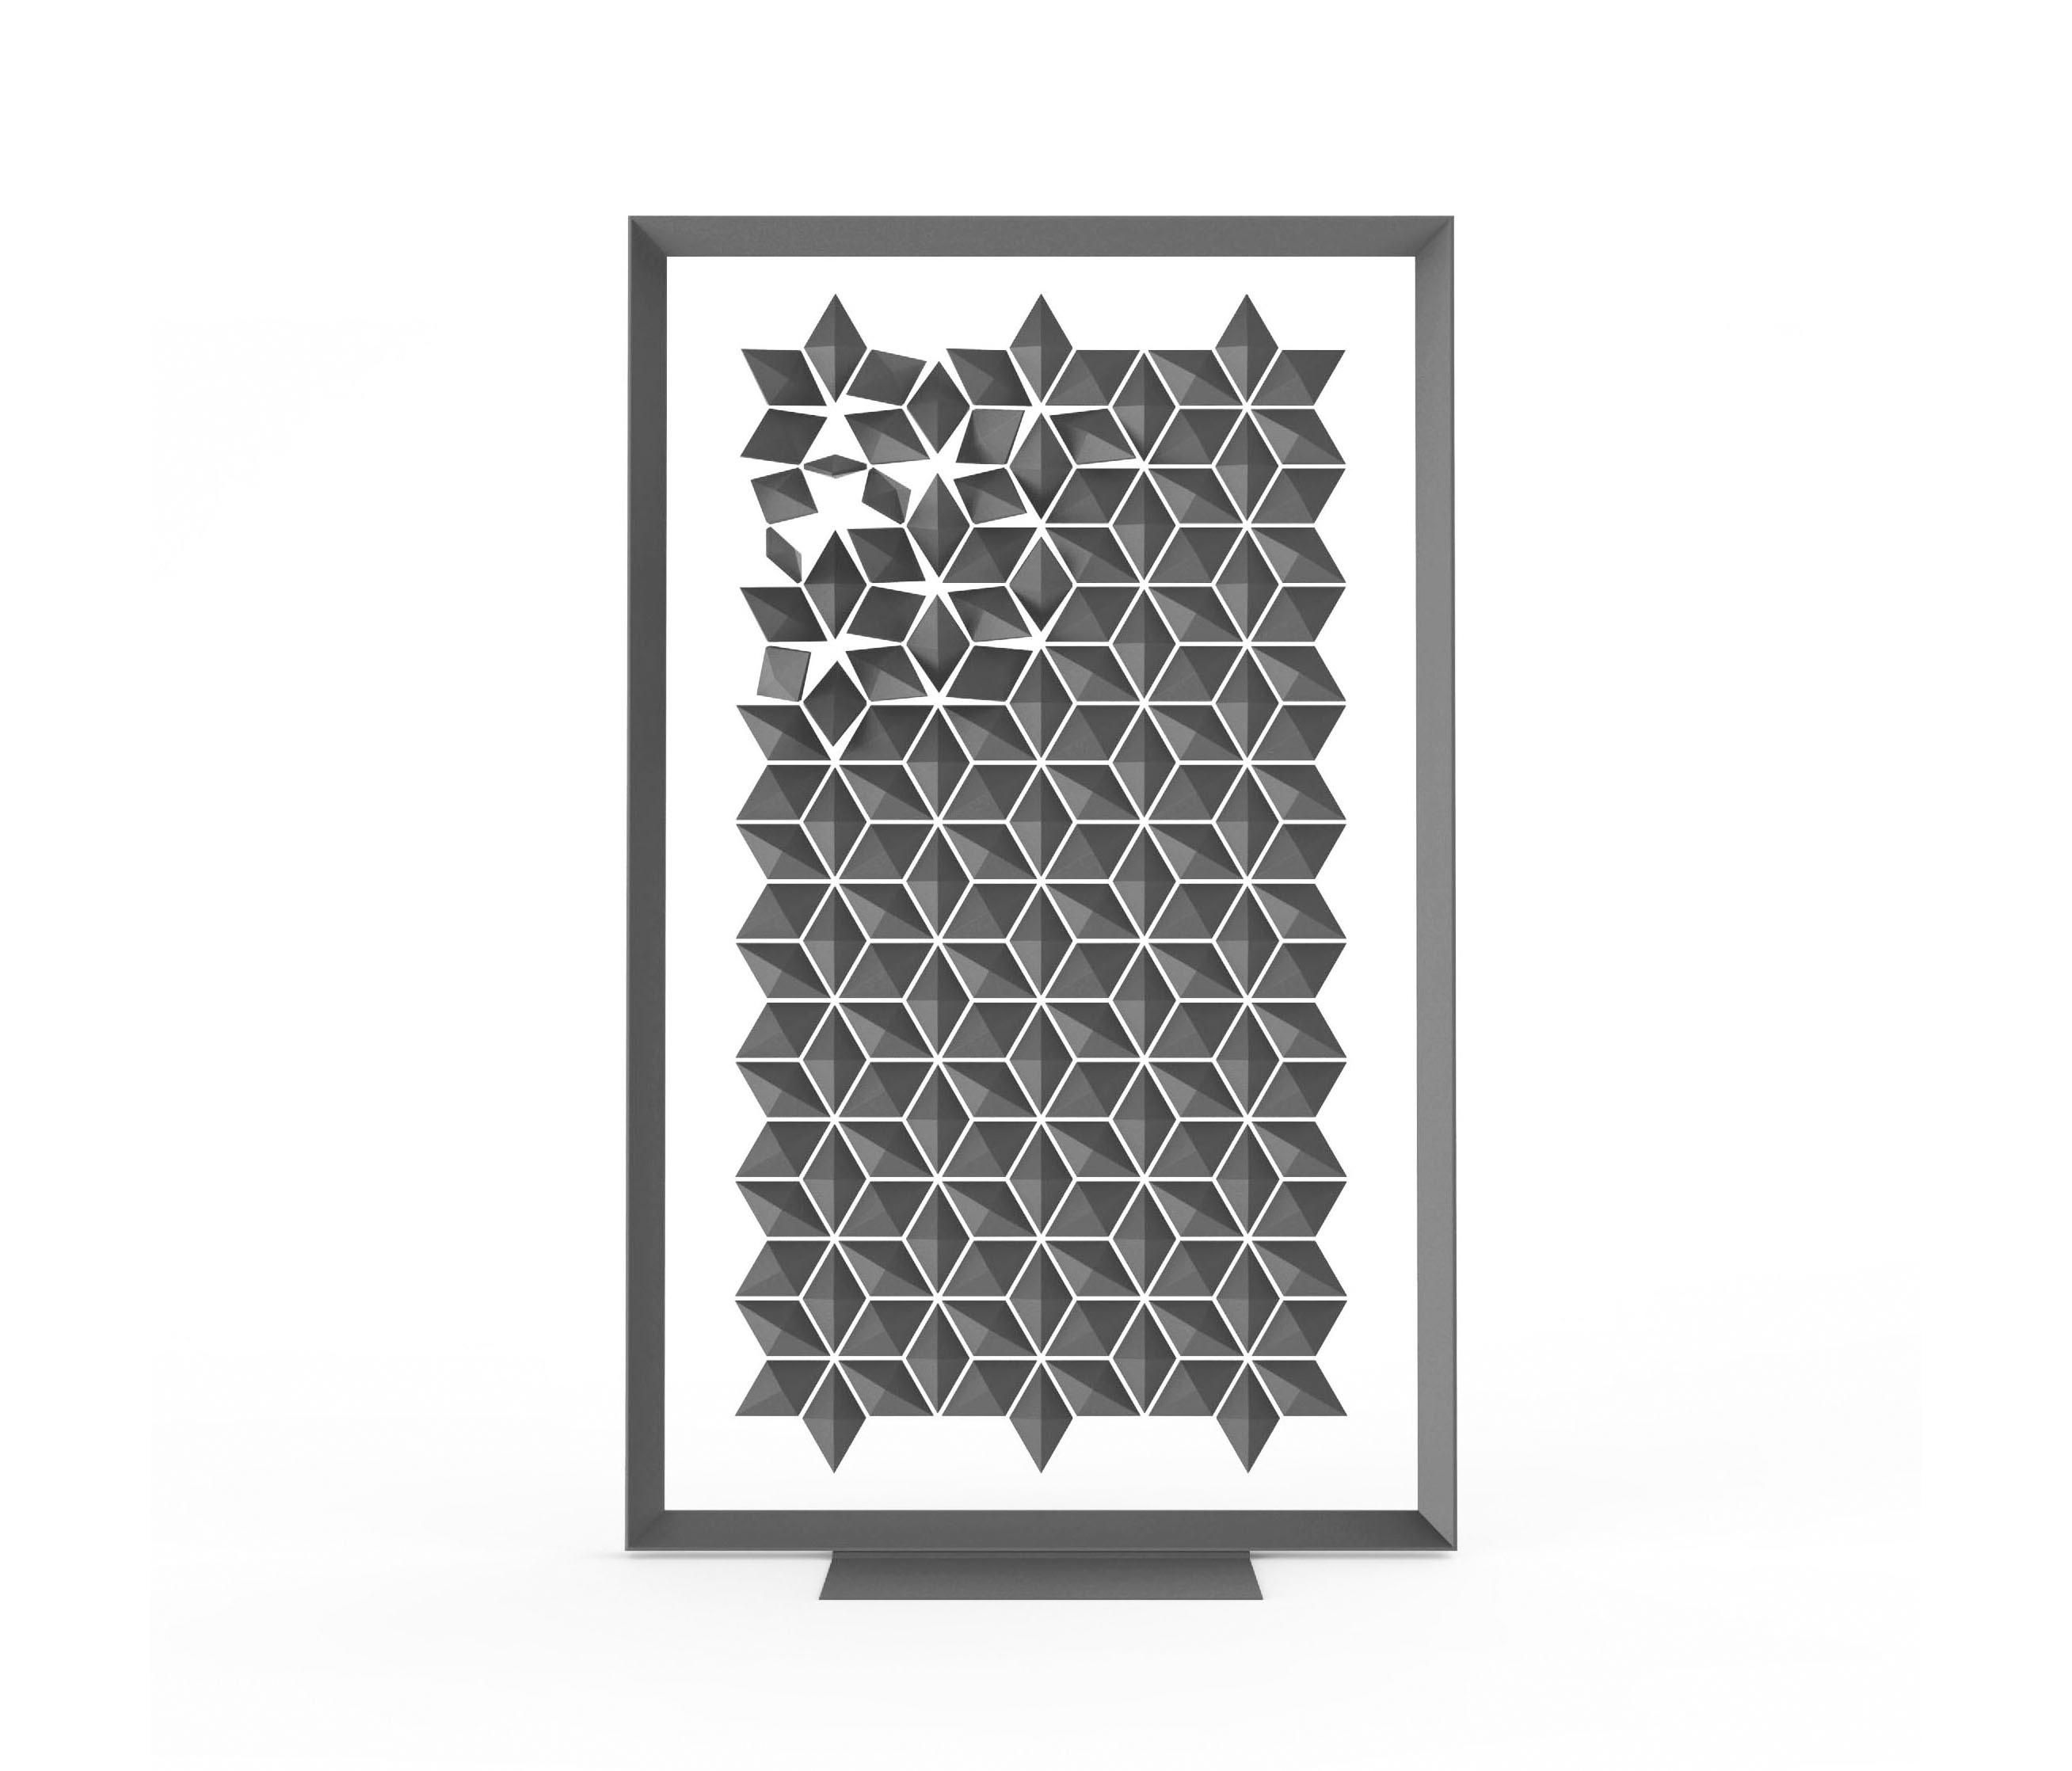 Pin by annekoe on dividers pinterest divider graphite and room